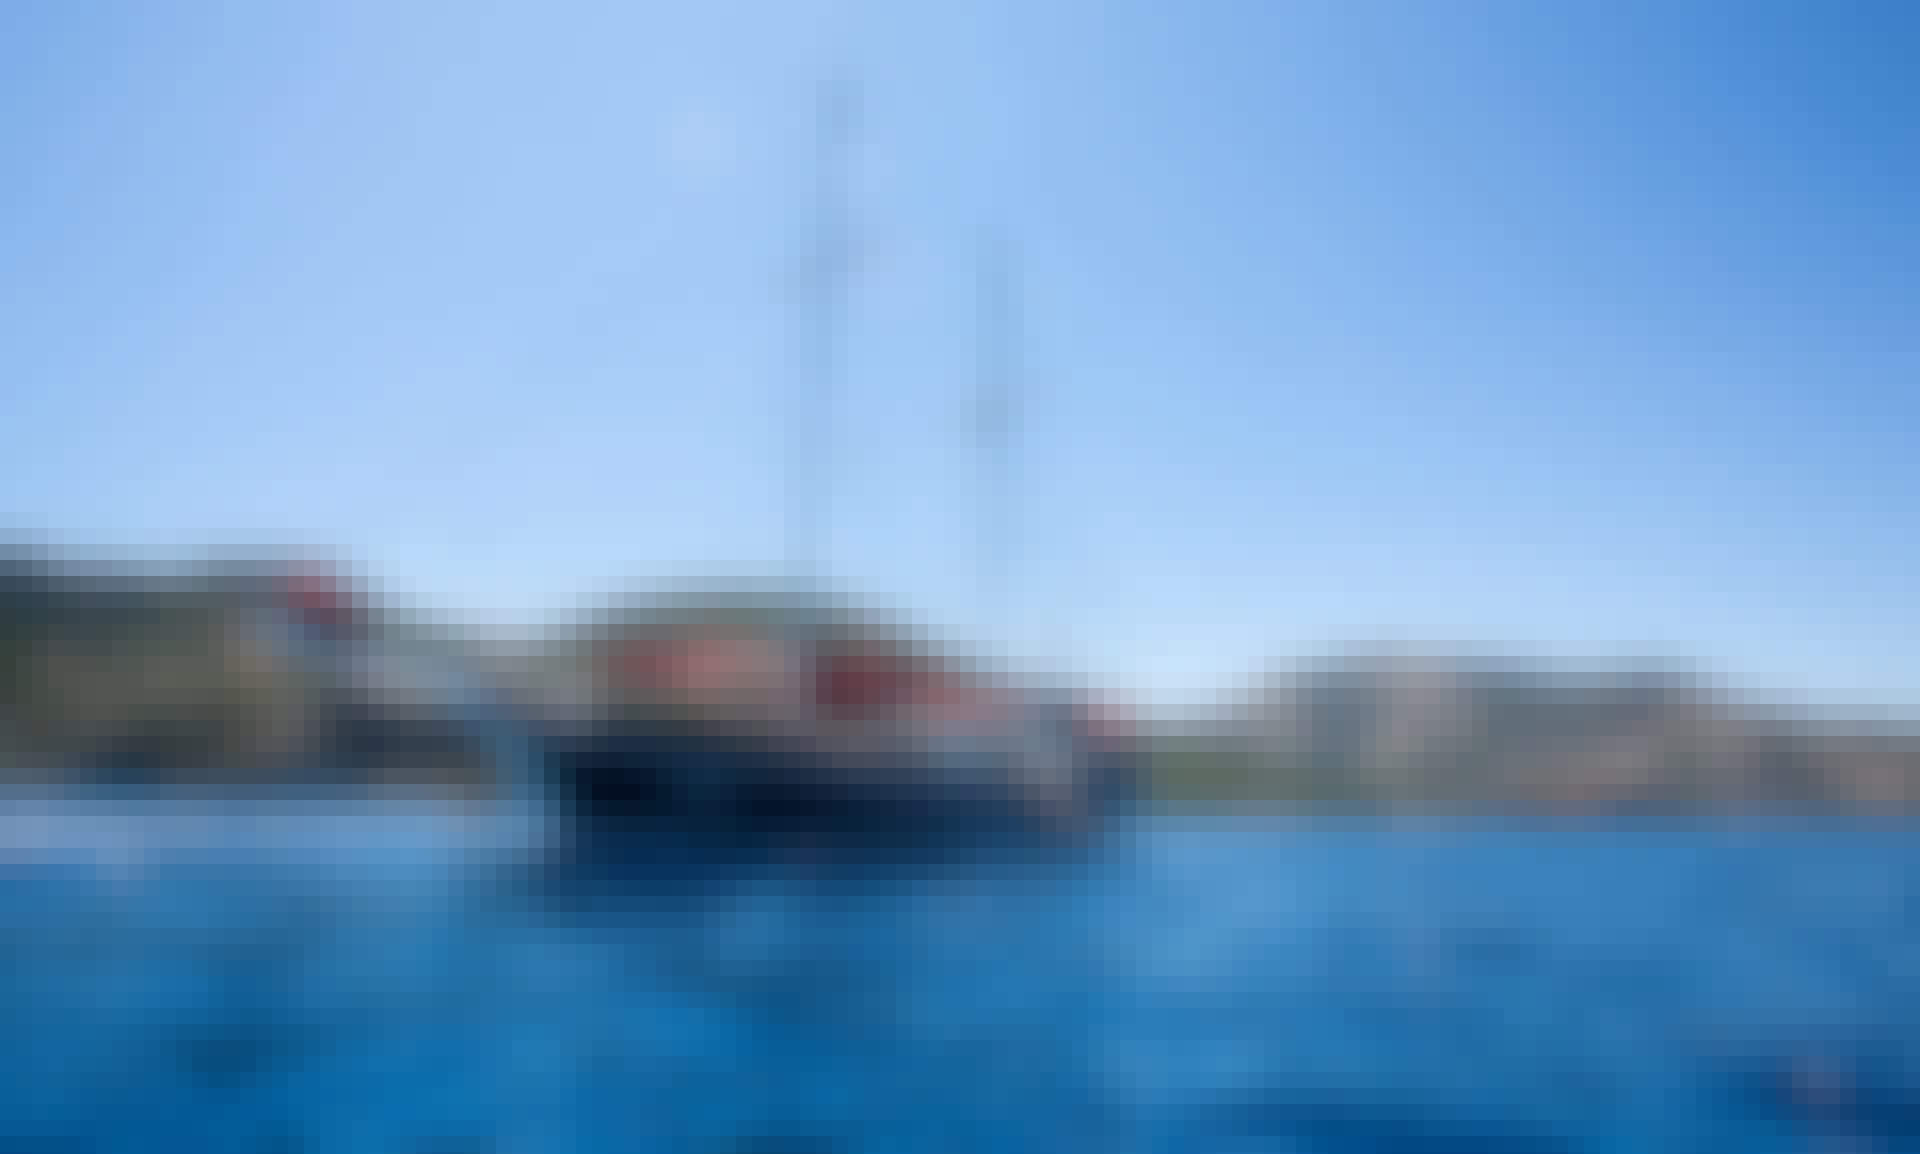 Absolutely Stunning 85' Gulet Pronto Blue 8 Person Yacht! See the Beauty of Turkey!